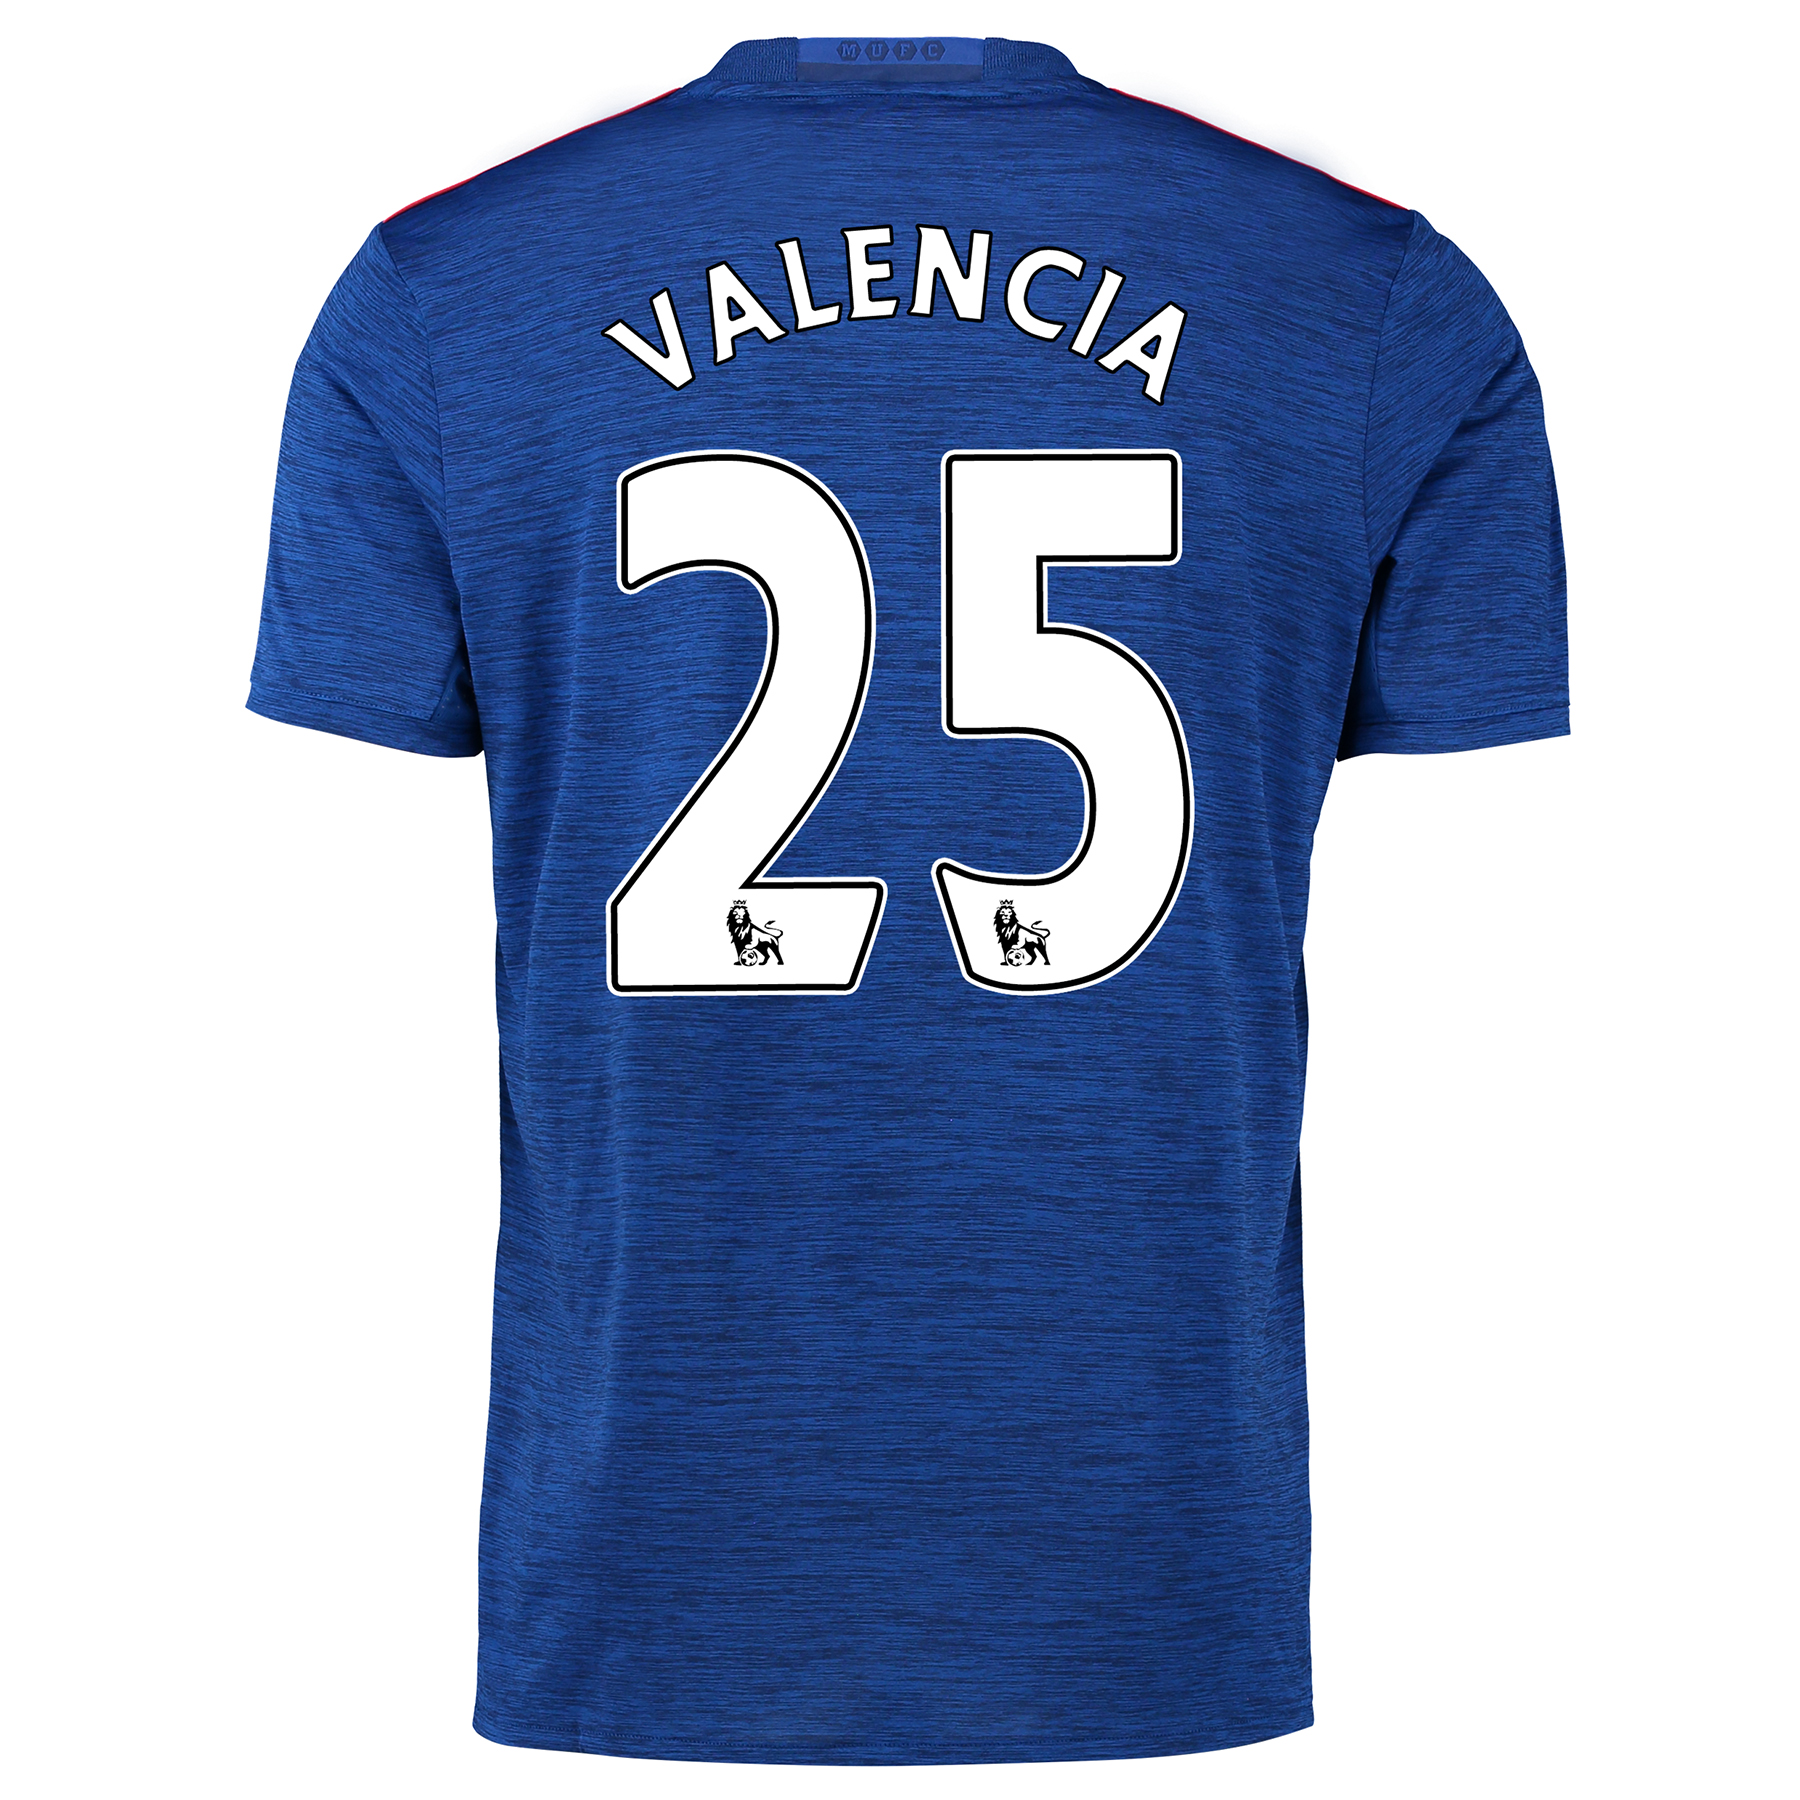 Manchester United Away Shirt 2016-17 with Valencia 25 printing